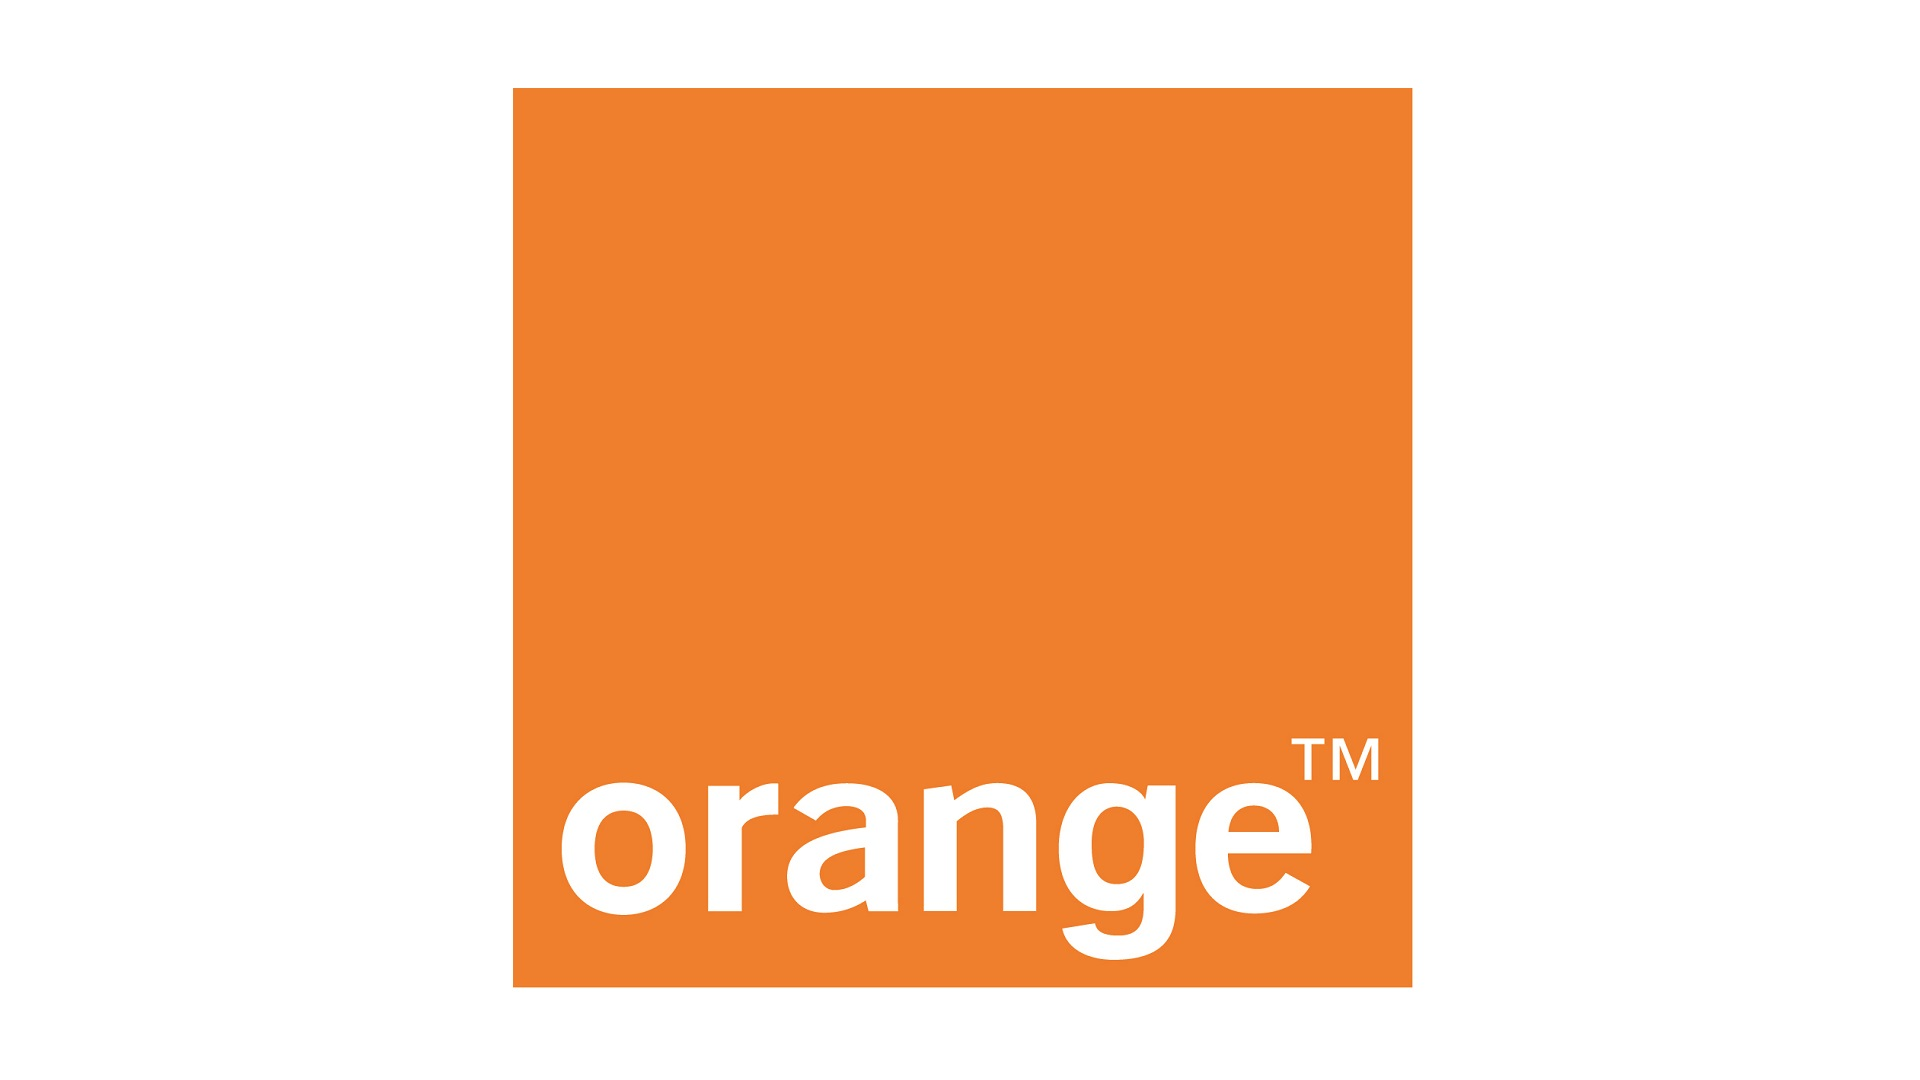 Orange is set to enter South Africa and Nigeria 'within months'